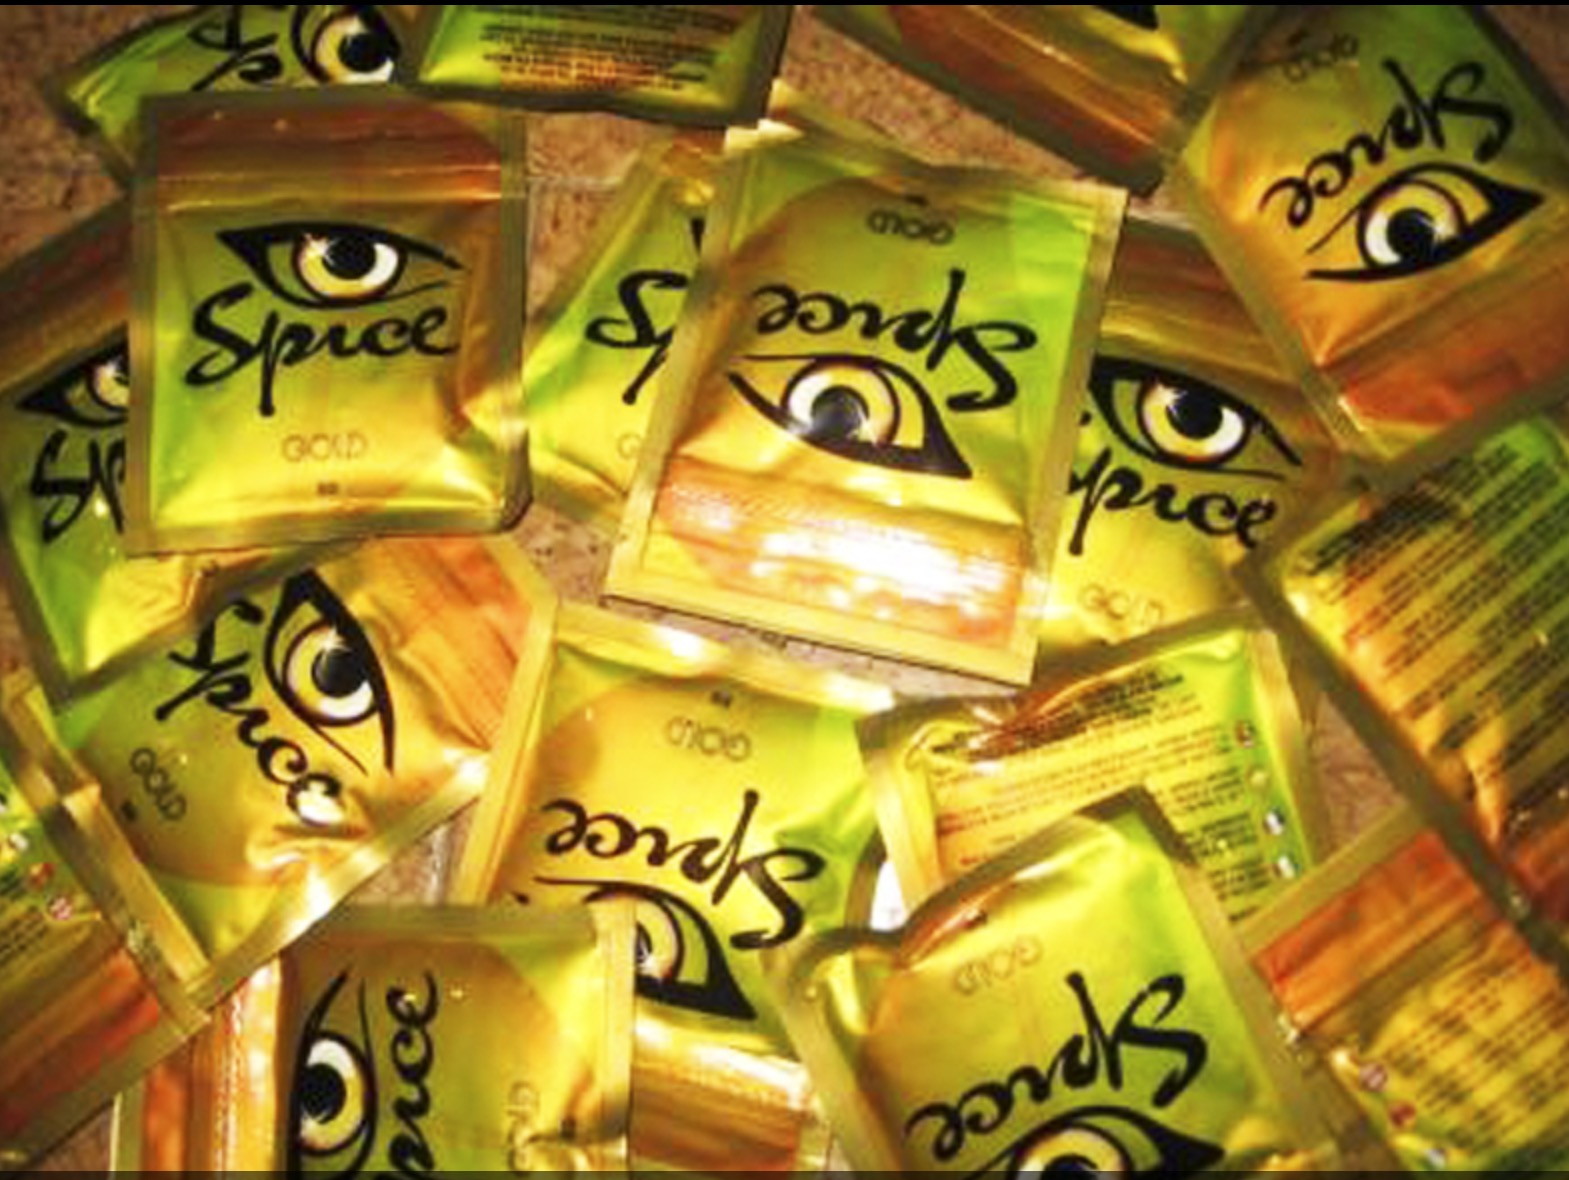 Spice Gold. Synthetic marijuana.